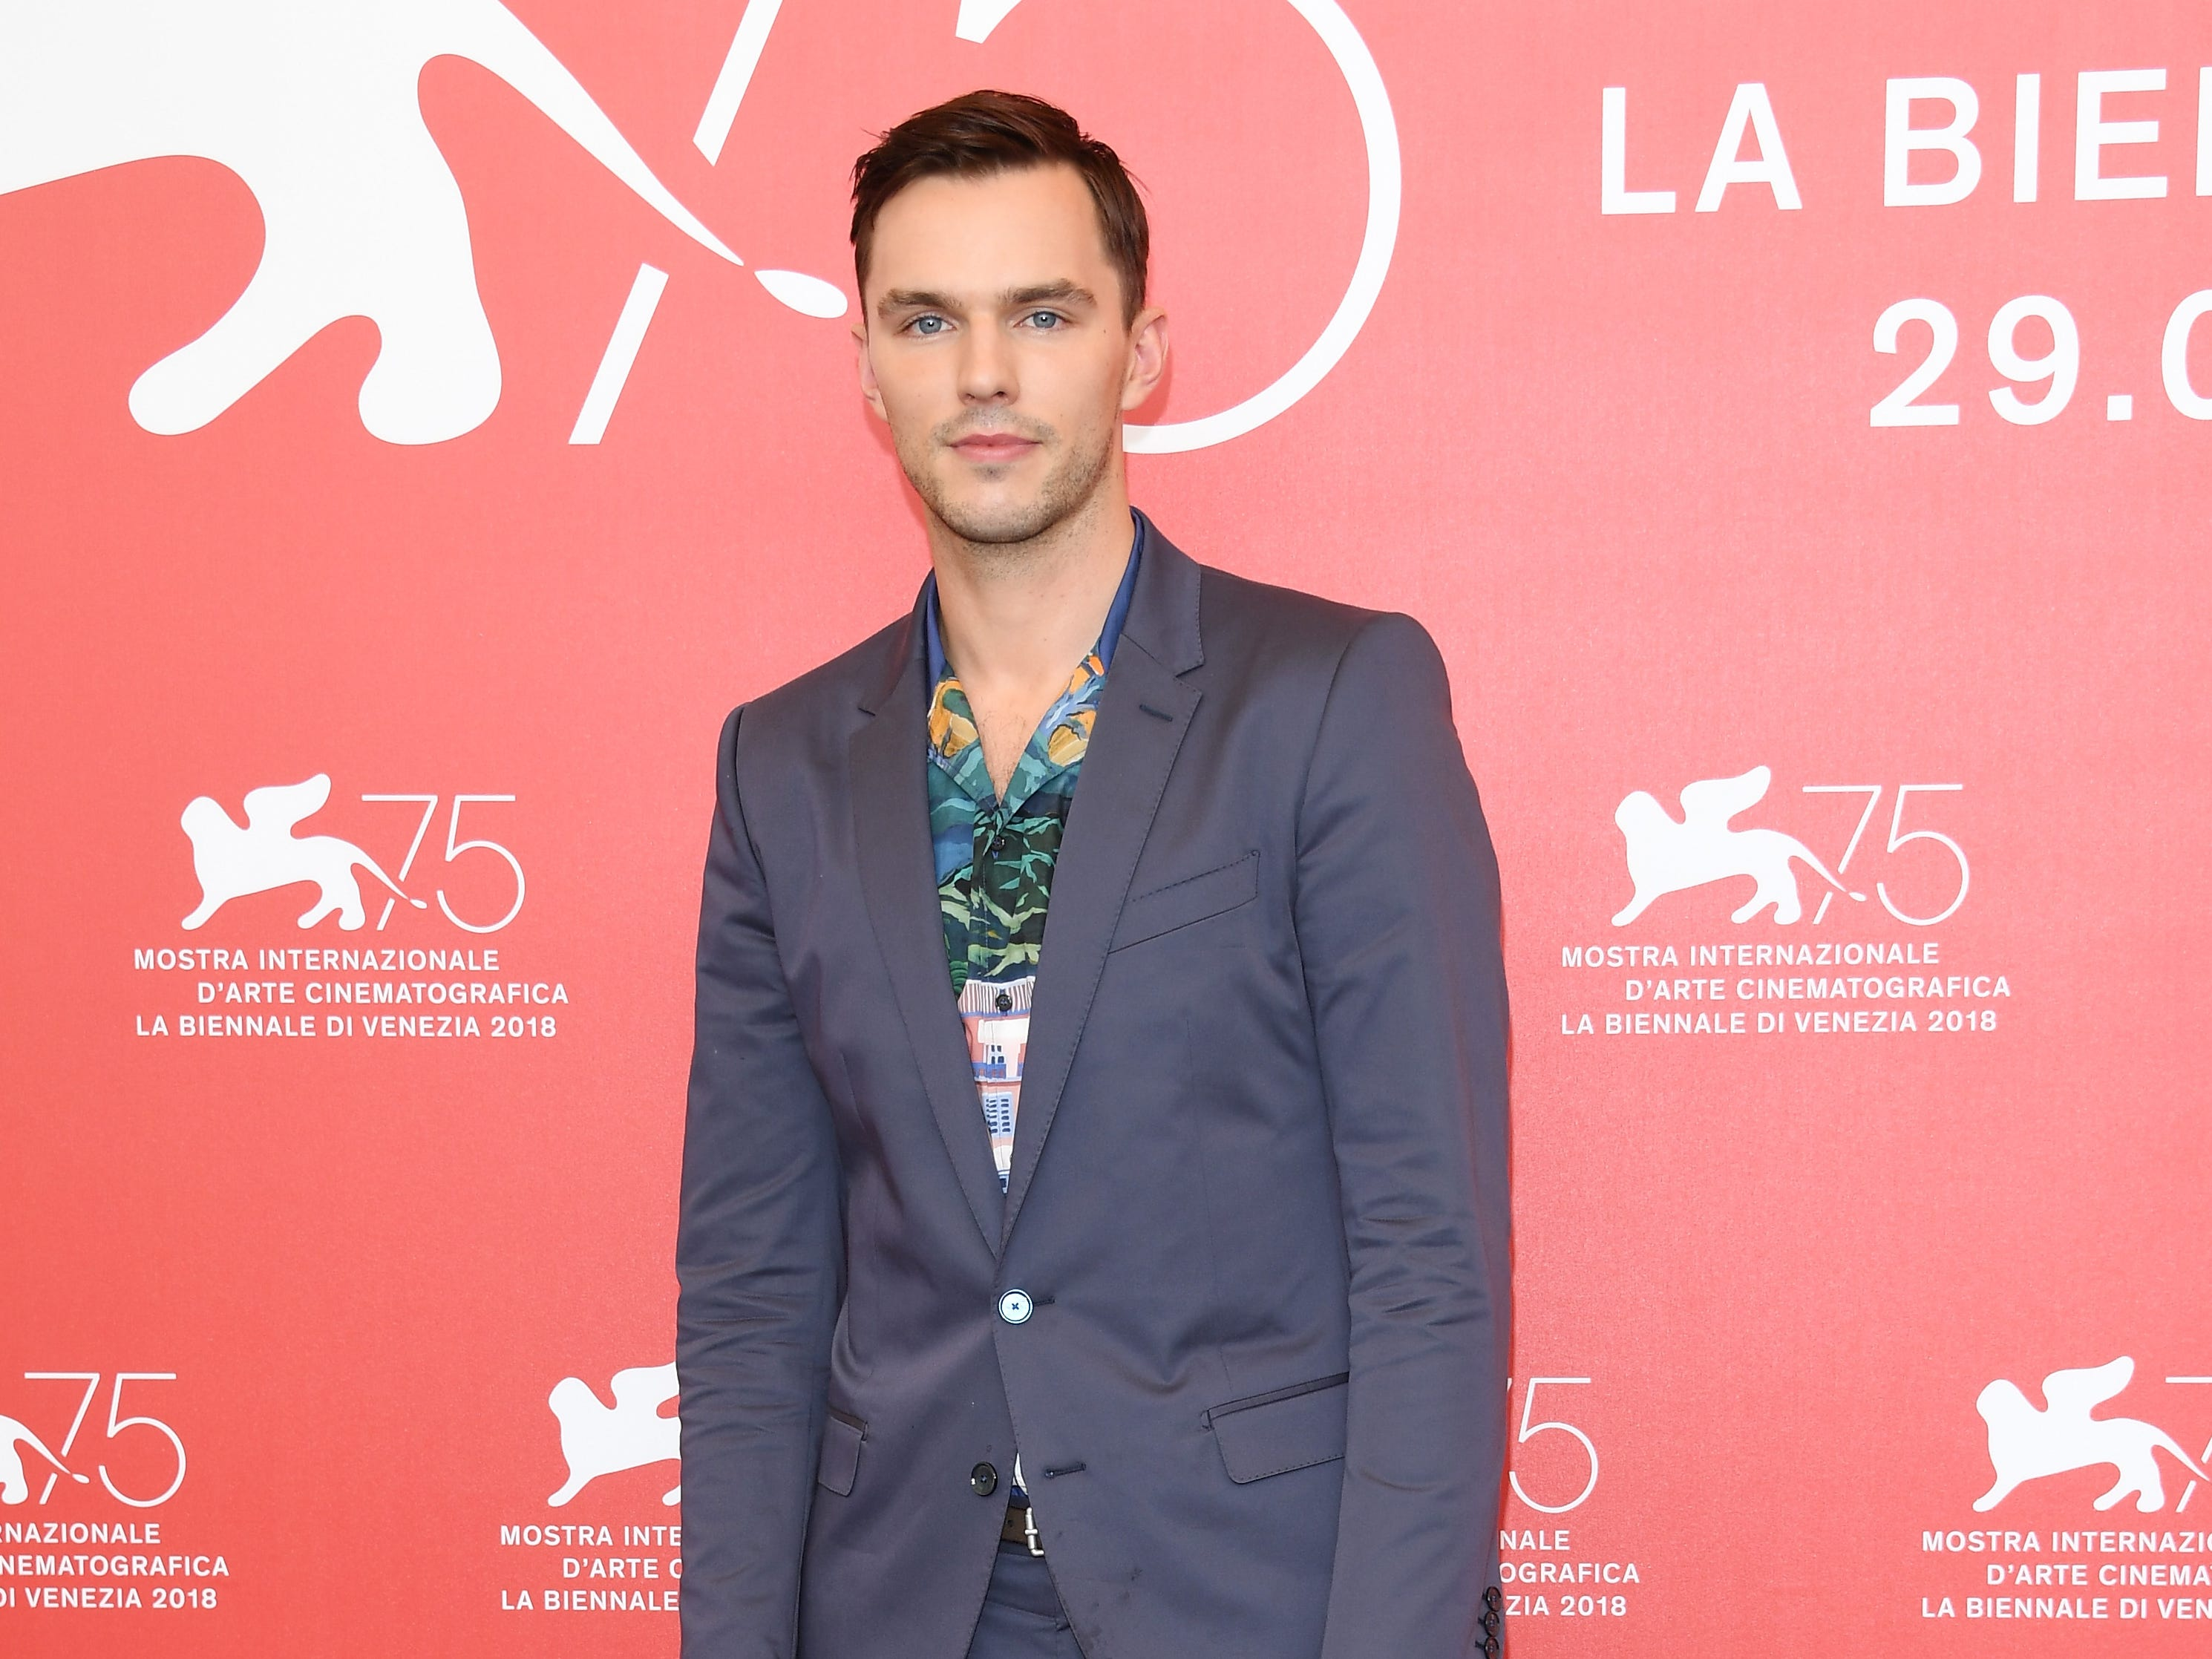 VENICE, ITALY - AUGUST 30:  Nicholas Hoult attends 'The Favourite' photocall during the 75th Venice Film Festival at Sala Casino on August 30, 2018 in Venice, Italy.  (Photo by Daniele Venturelli/Daniele Venturelli/WireImage) ORG XMIT: 775200689 ORIG FILE ID: 1025254624 x